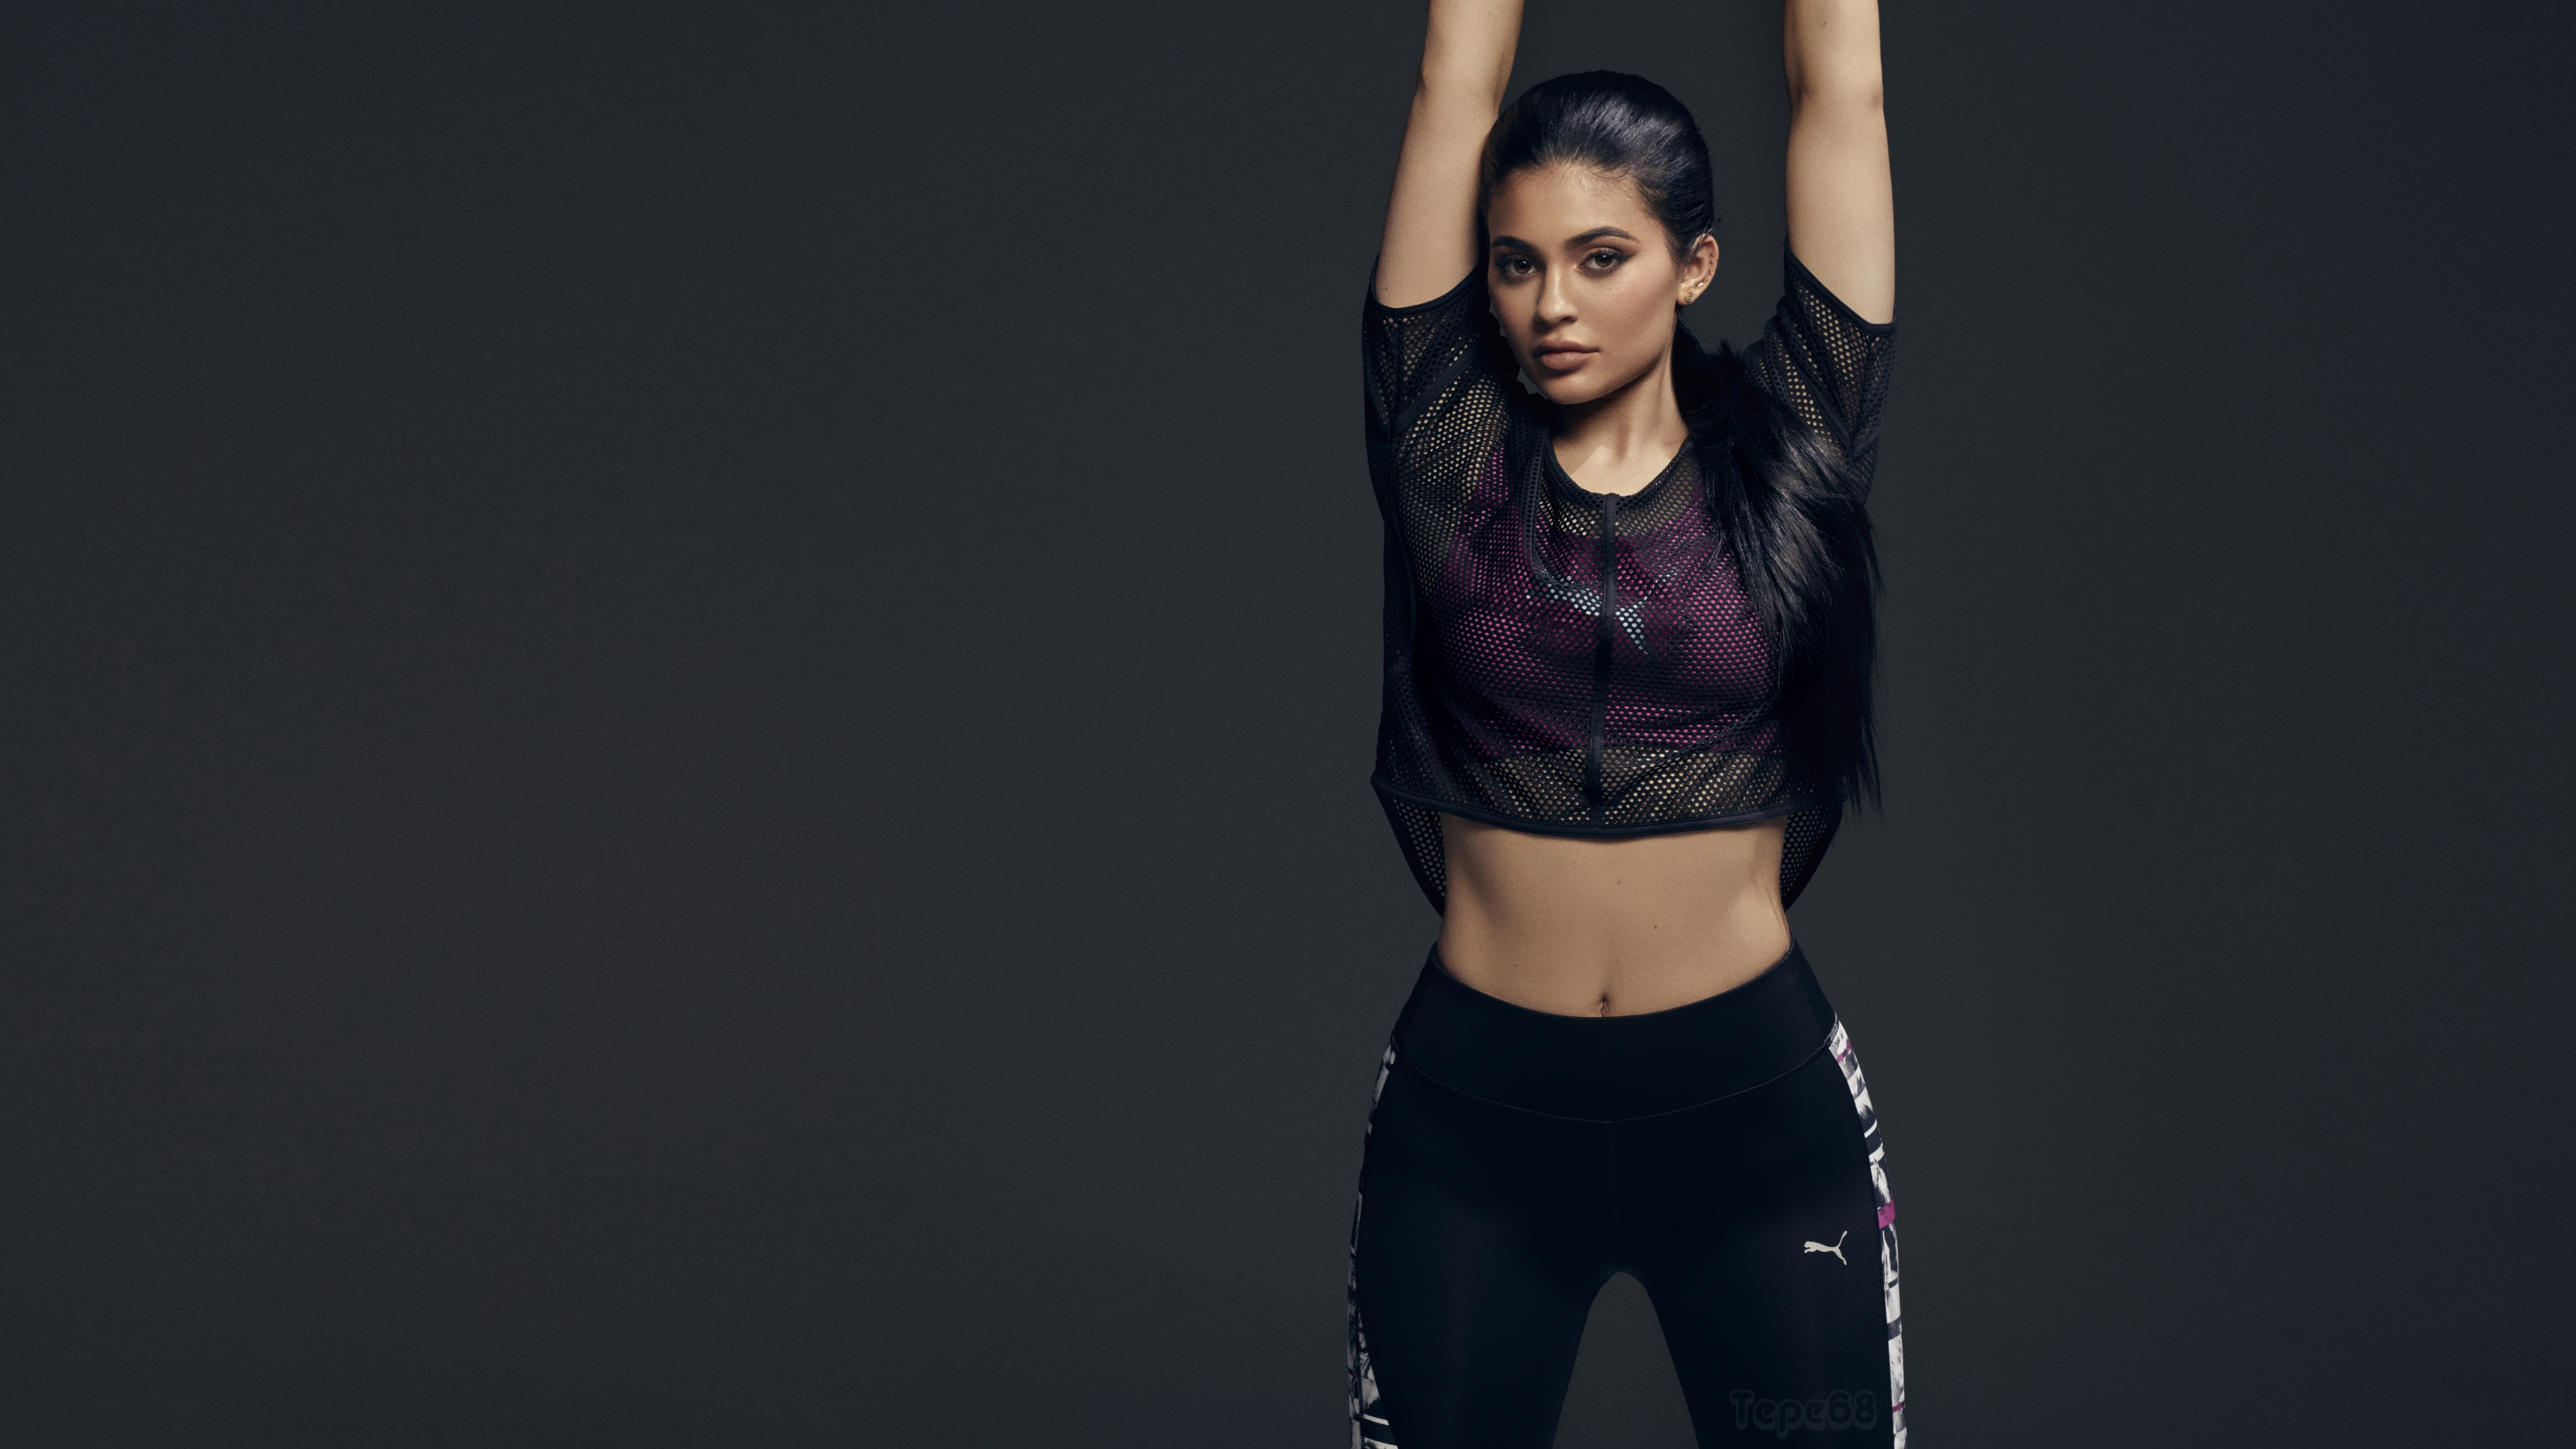 kylie jenner puma 2017, hd celebrities, 4k wallpapers, images